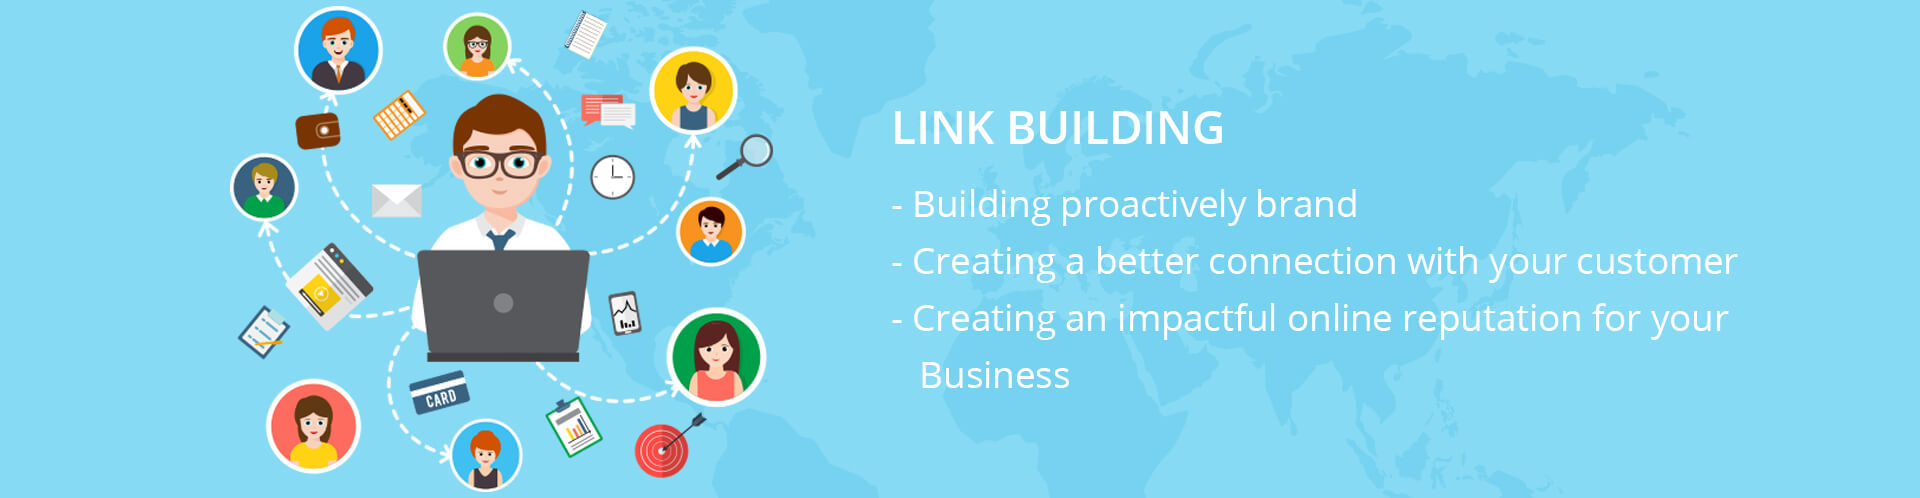 Link Building Services, SEO Link Building Company, Link